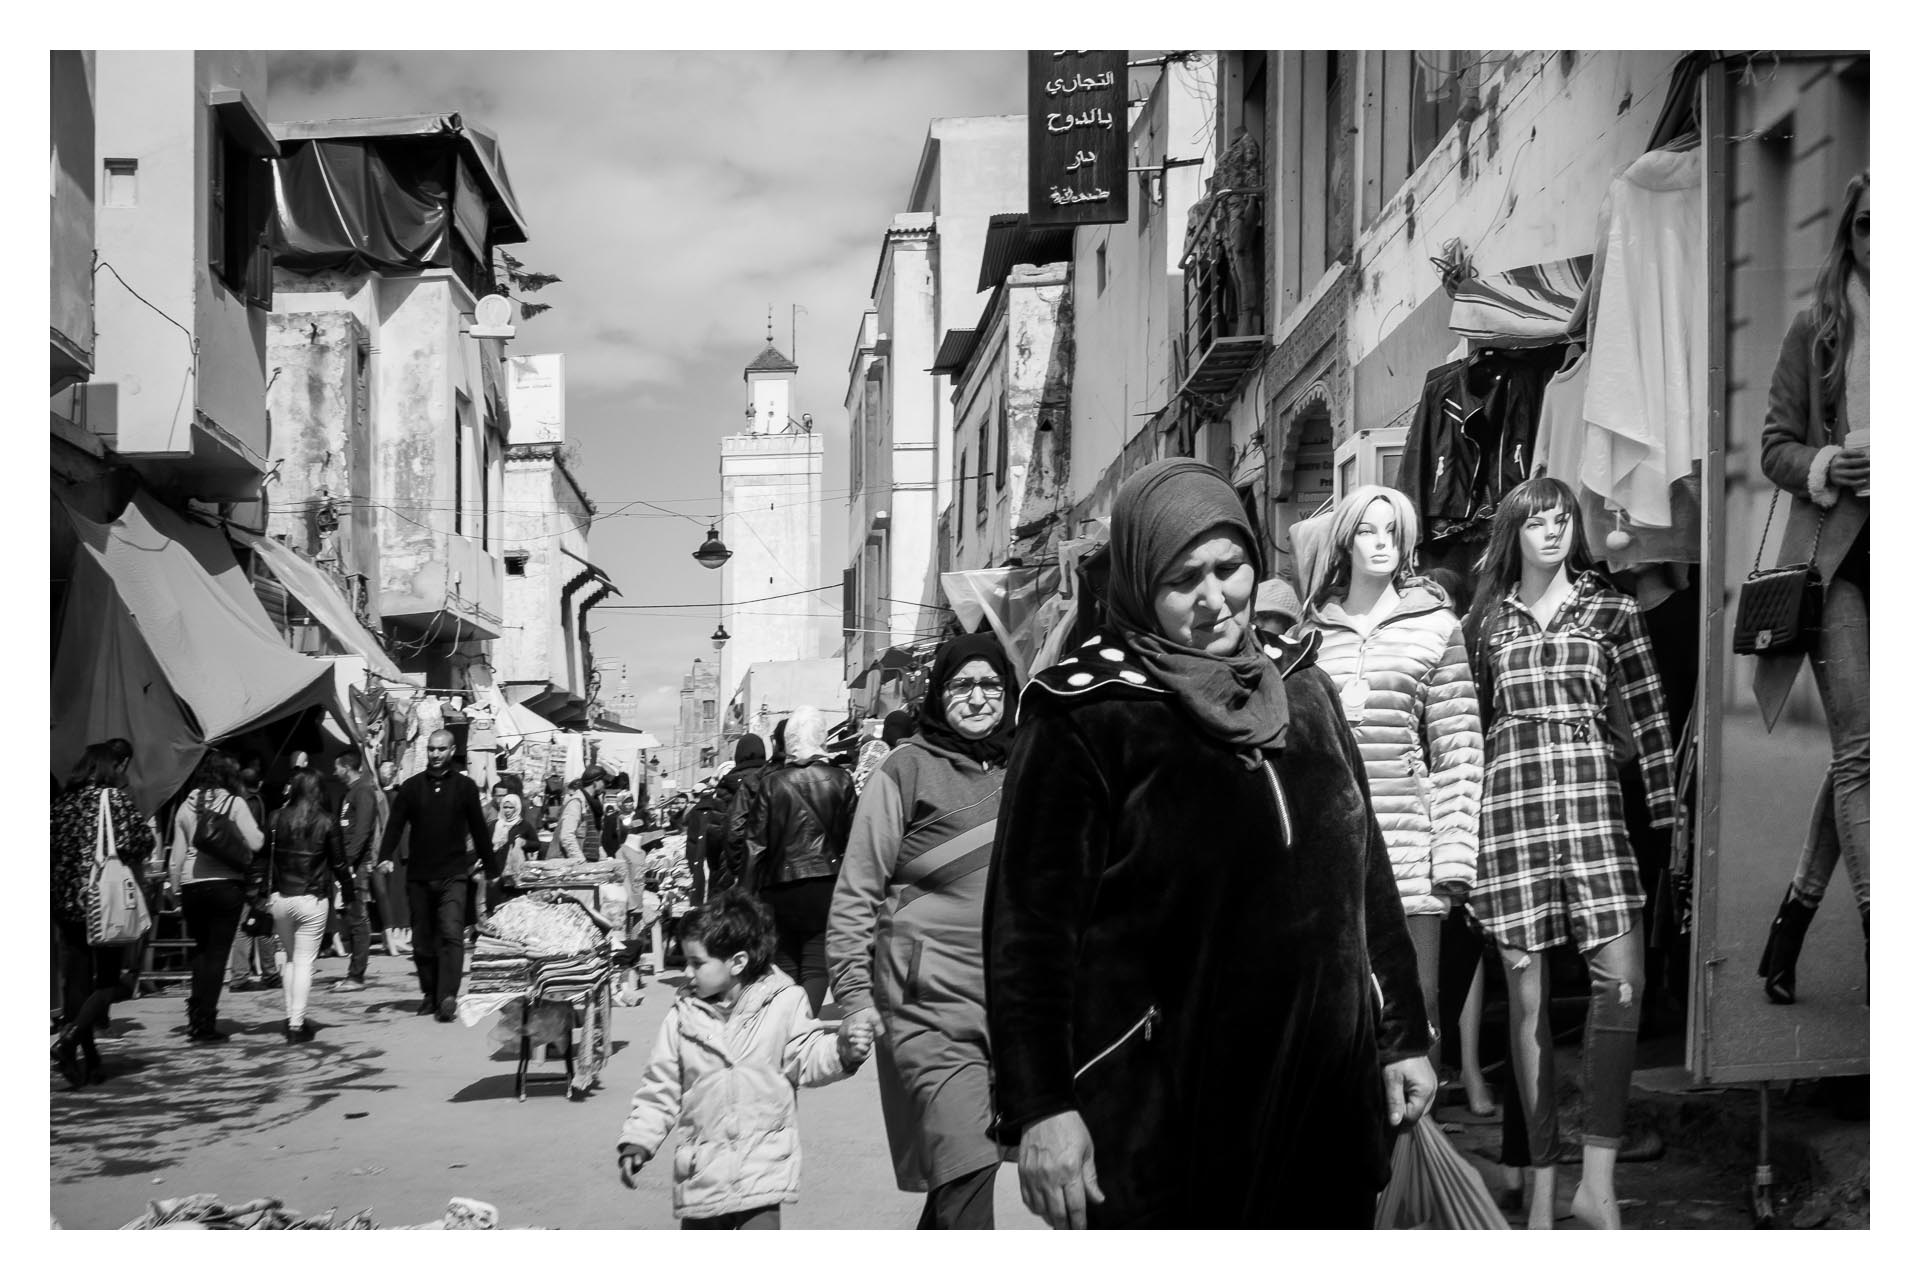 PEOPLE OF RABAT 10